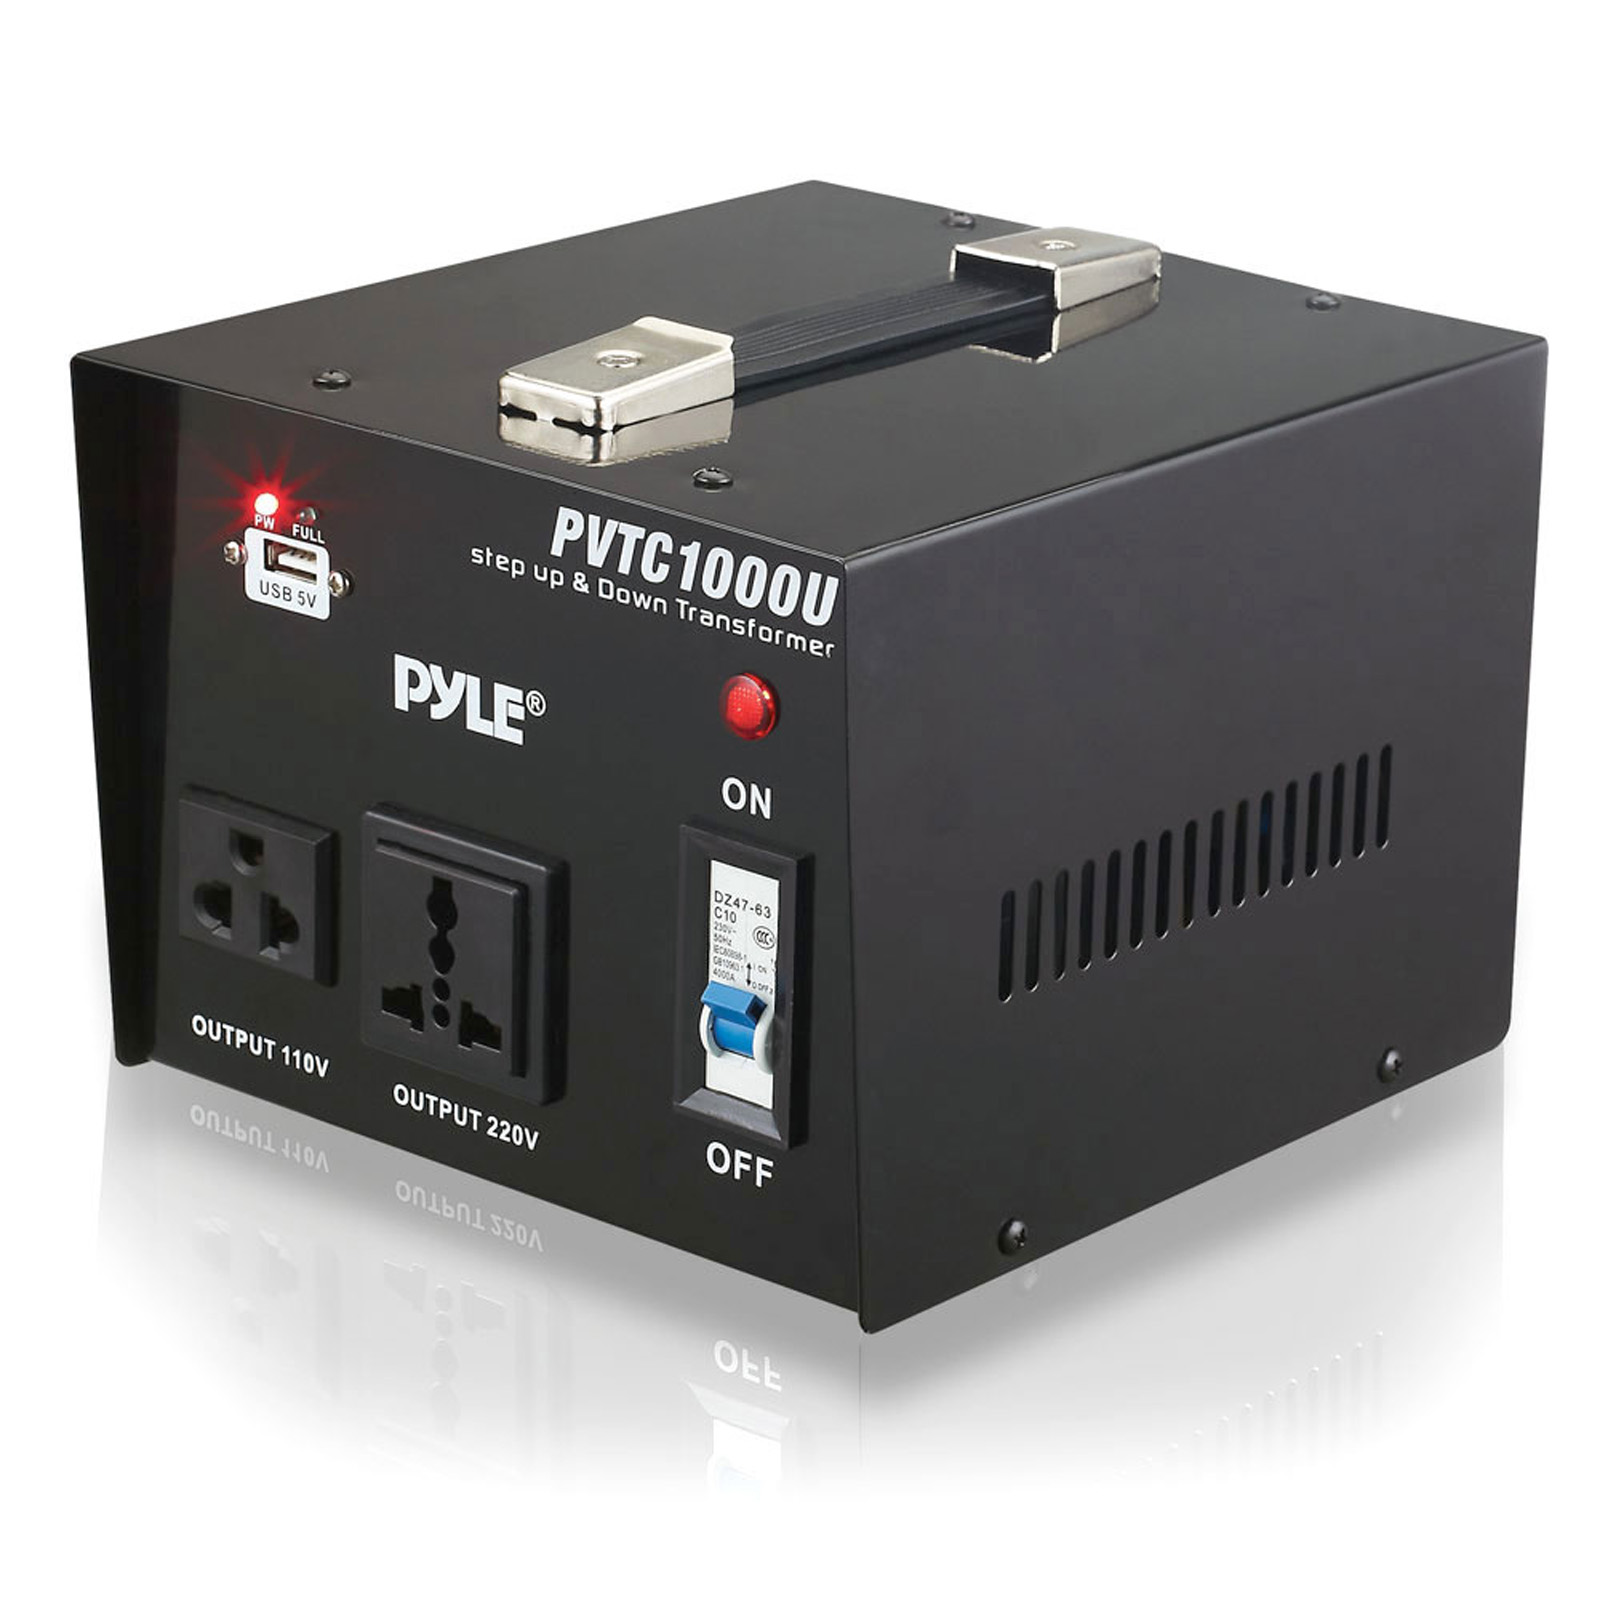 Pyle Step Up and Step Down 1000 Watt Voltage Converter Transformer with USB ing Port - AC 110/220 V